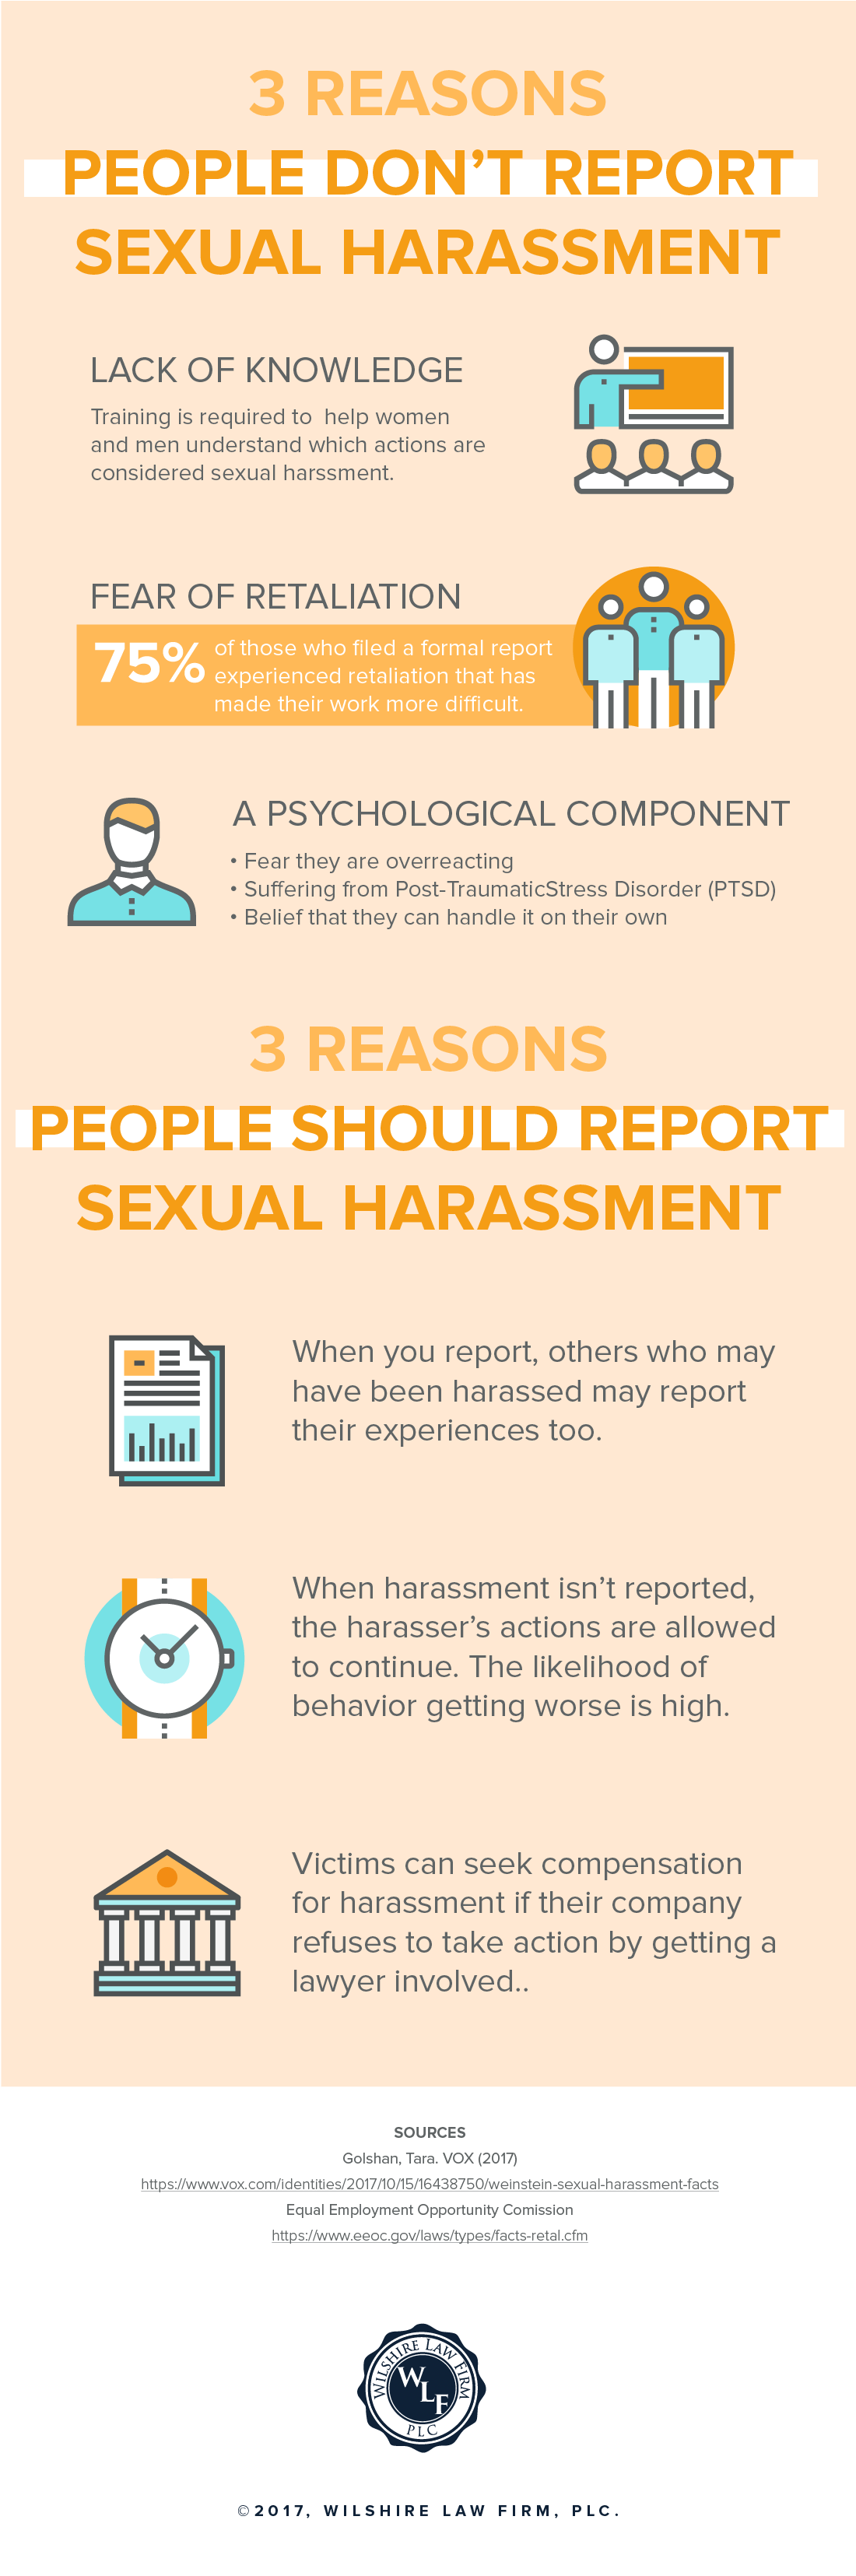 3 Reasons People Don't Report Sexual Harassment Infographic